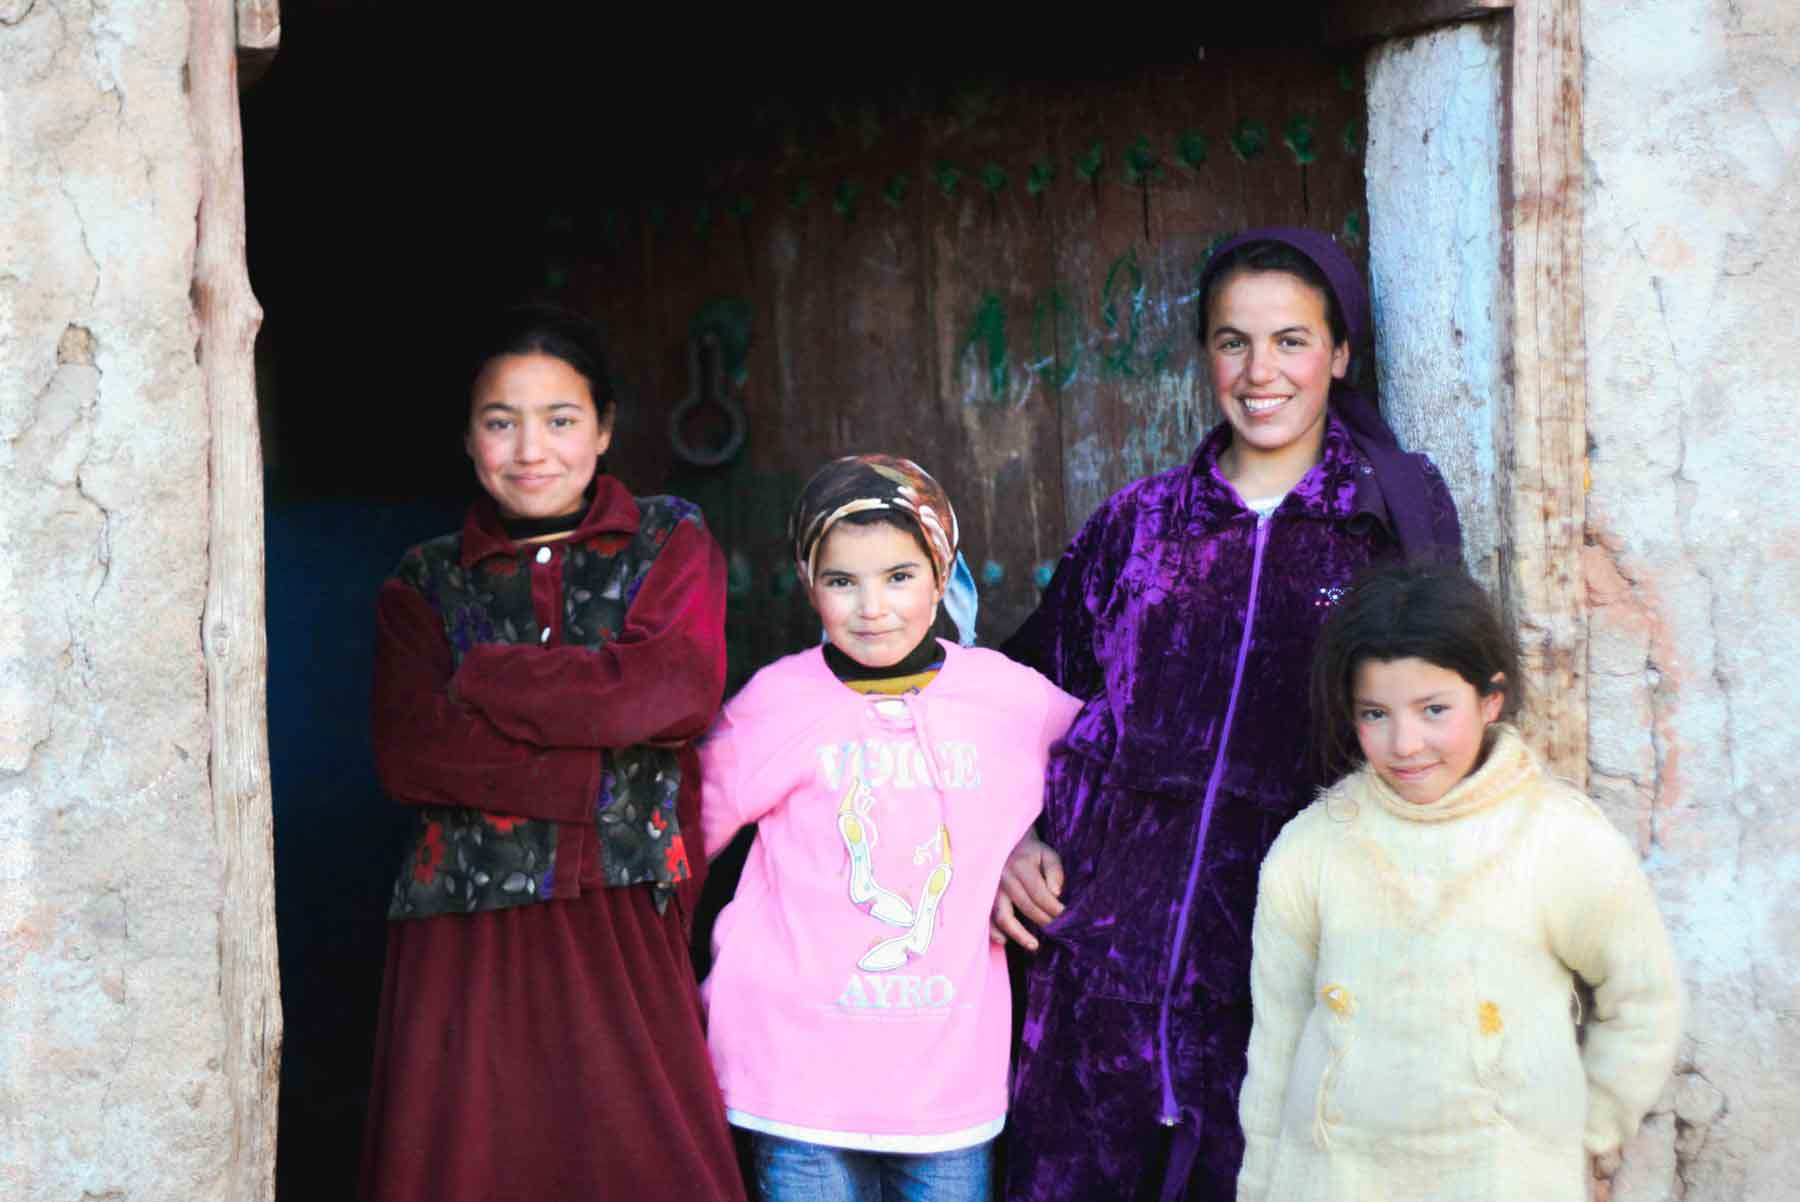 Middle Eastern women standing outside their home and smiling